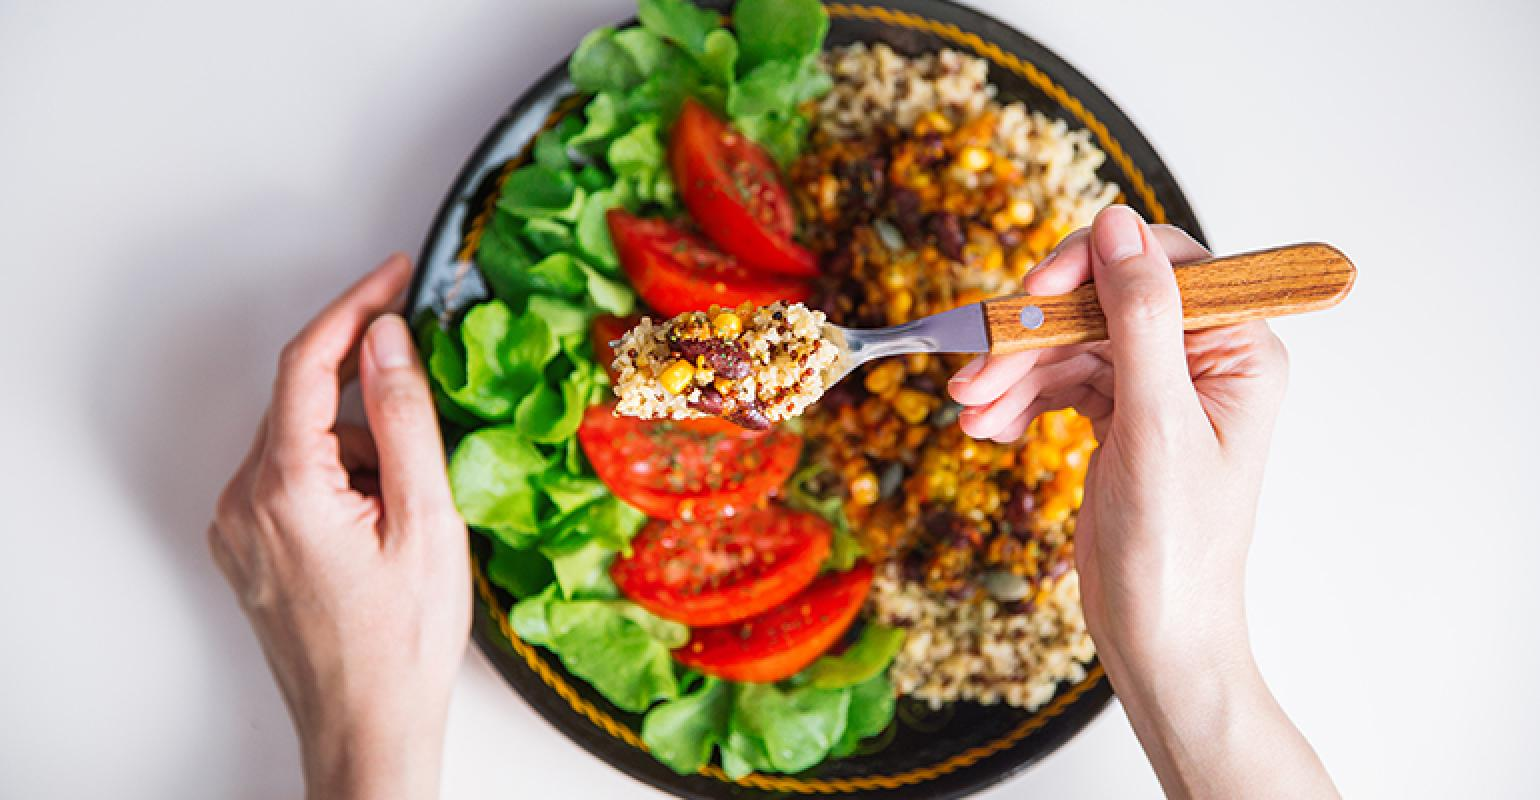 Does science support plant-based eating? | New Hope Network